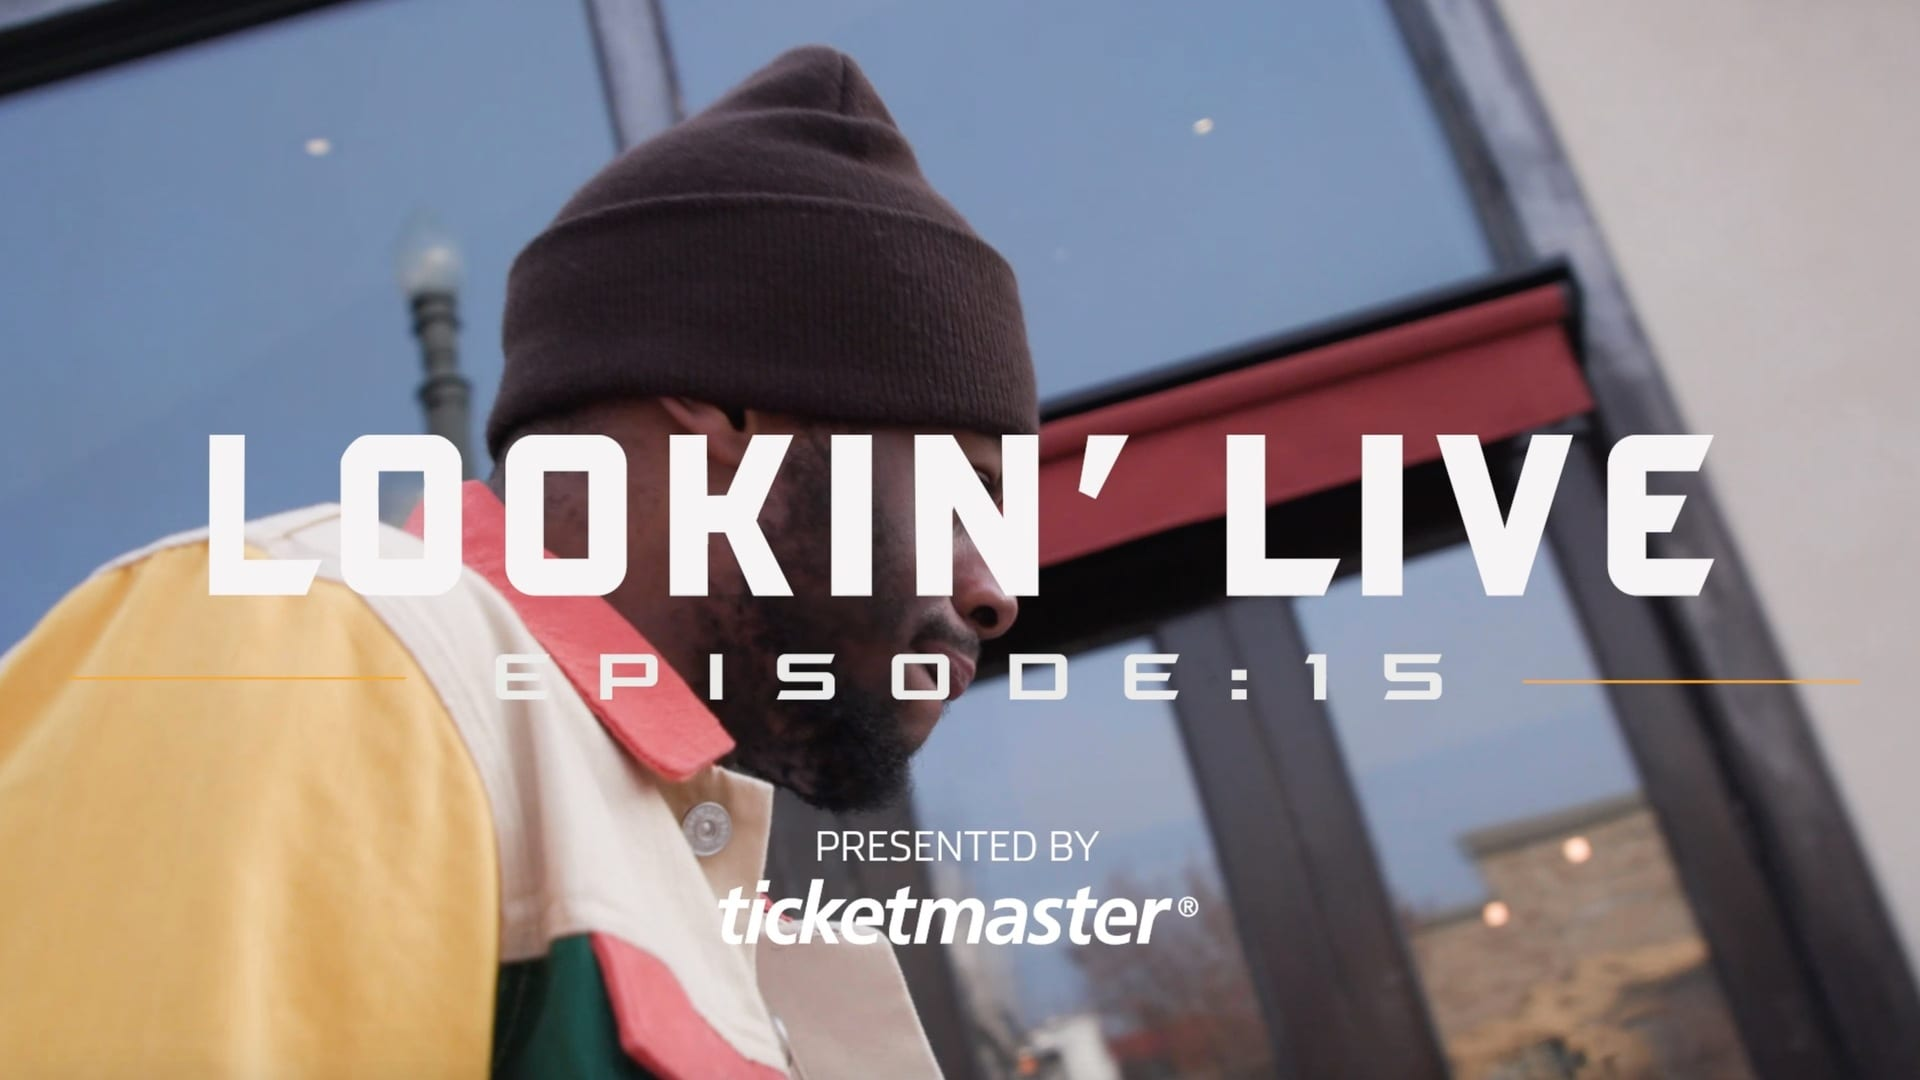 Lookin' Live: Episode 15